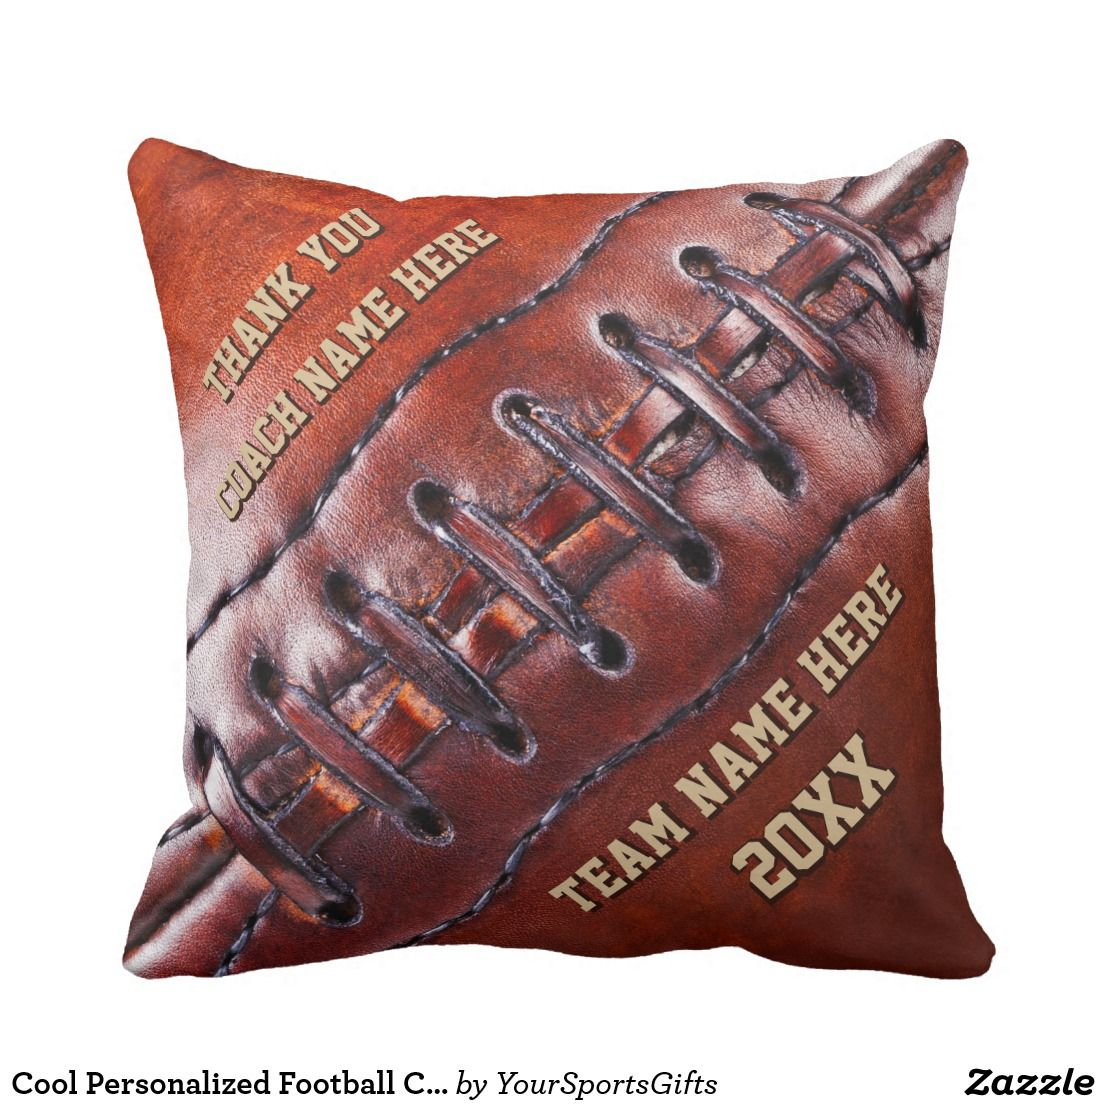 Cool personalized football coach gift ideas throw pillow